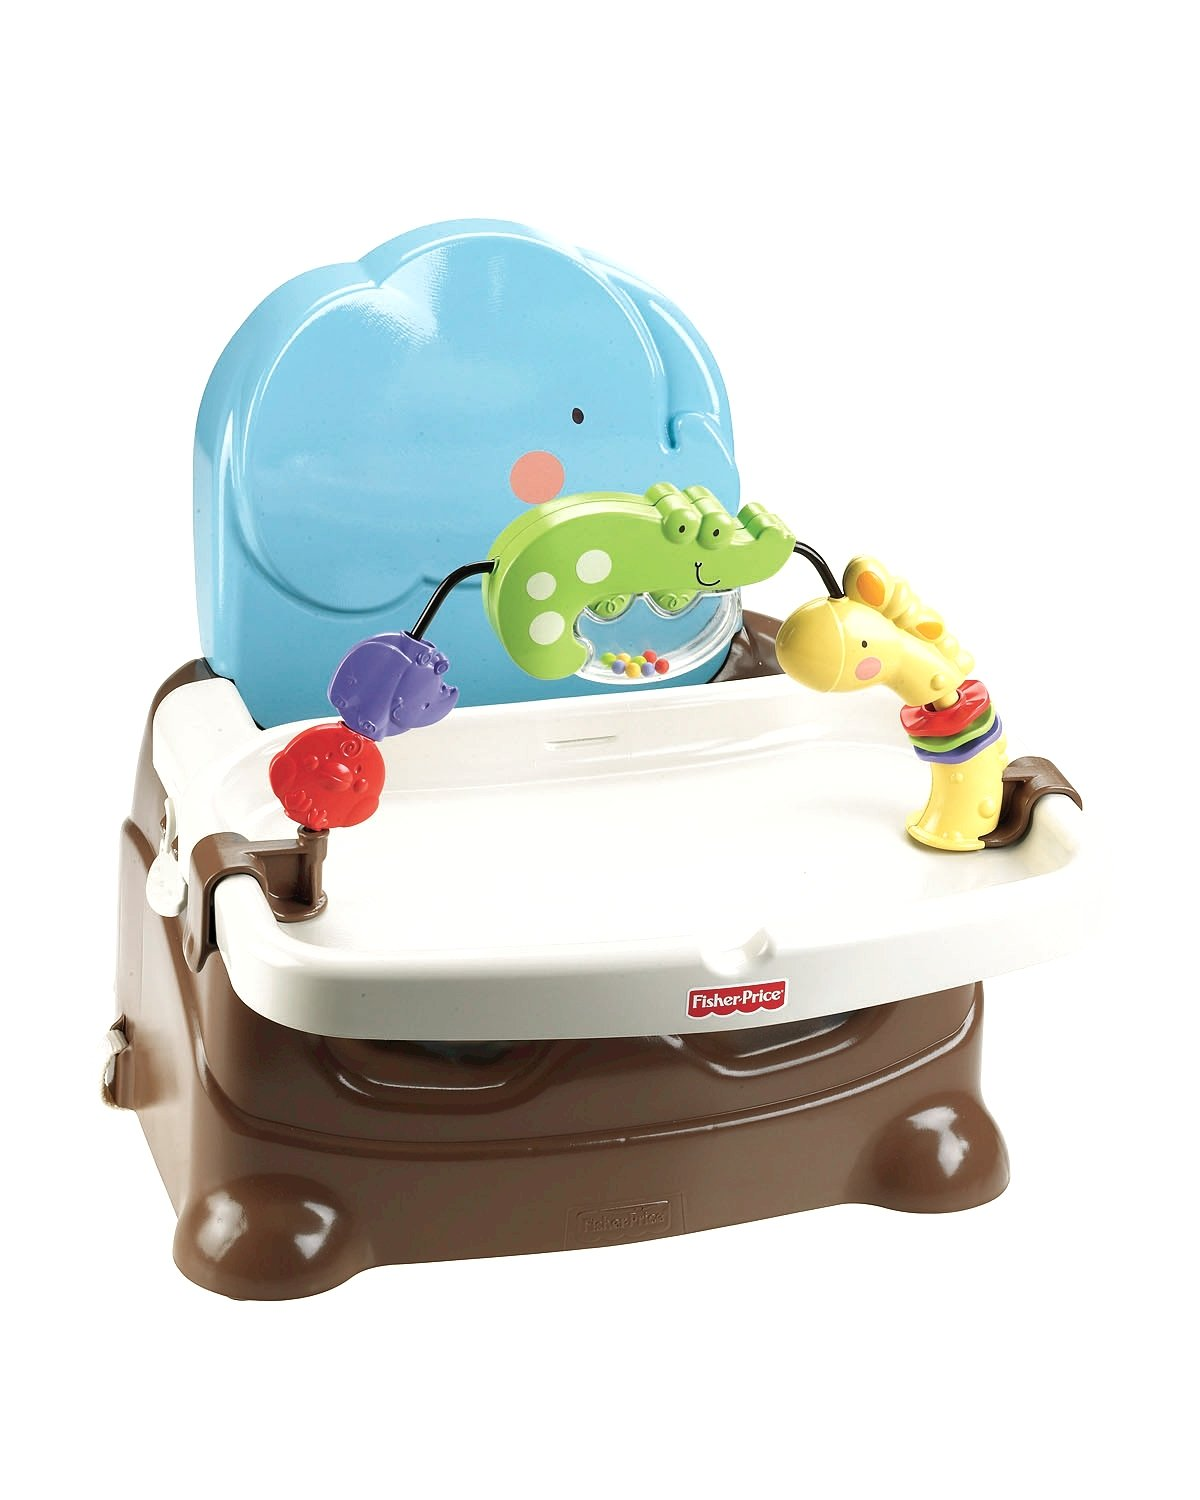 Fisher price booster chair - Amazon Com Fisher Price Luv U Zoo Busy Baby Booster Discontinued By Manufacturer Chair Booster Seats Baby